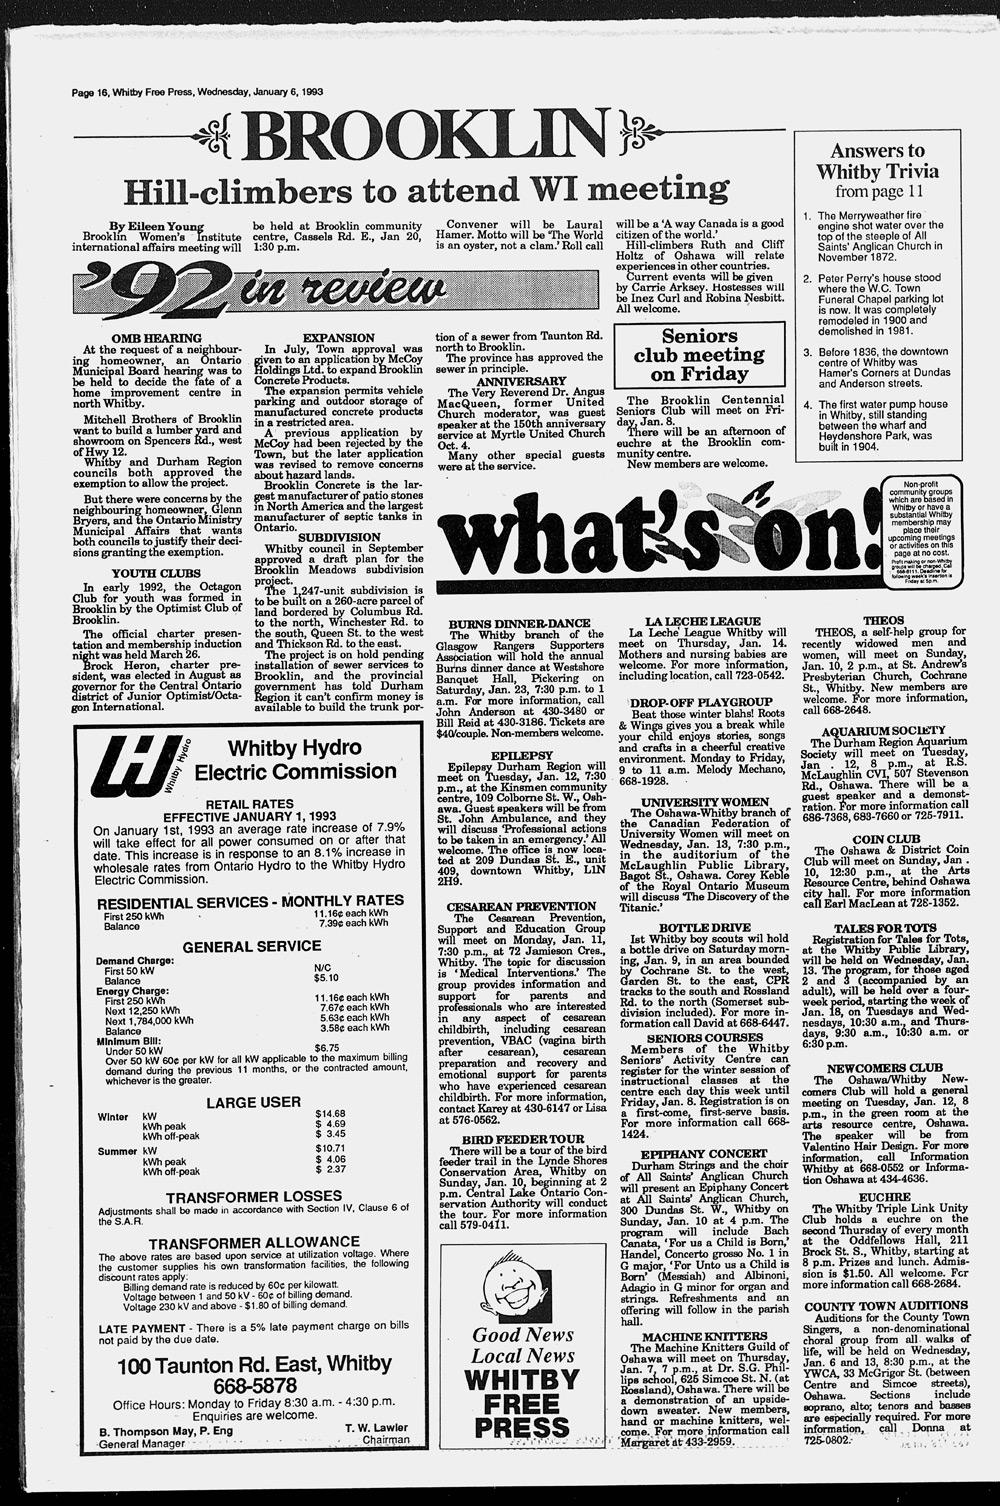 Whitby Free Press, 6 Jan 1993